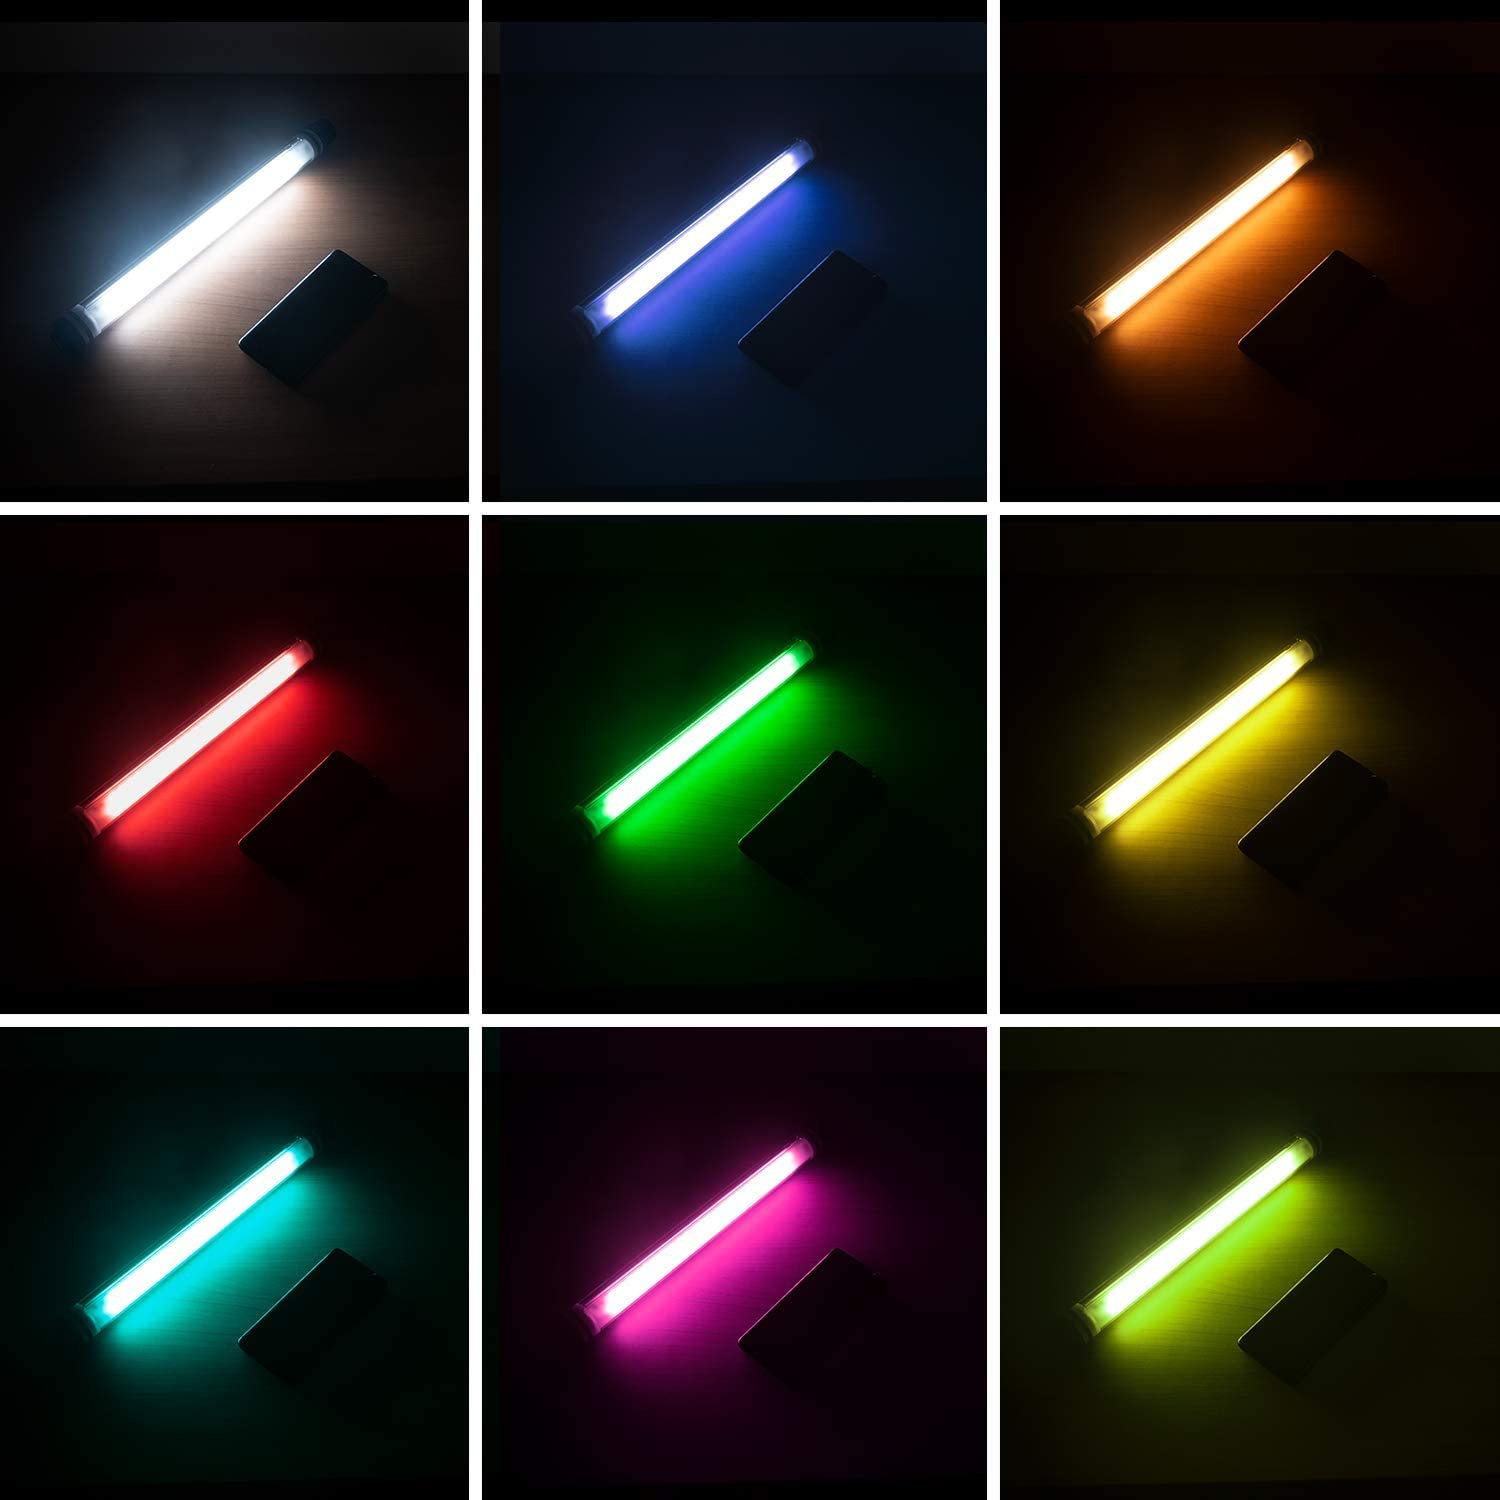 12 Lighting Mode YOUKOYI P7 RGB LED Video Light Wand Photography Portable Handheld Light 7 Colors Temperatures IP68 Waterproof Level Stepless Dimming